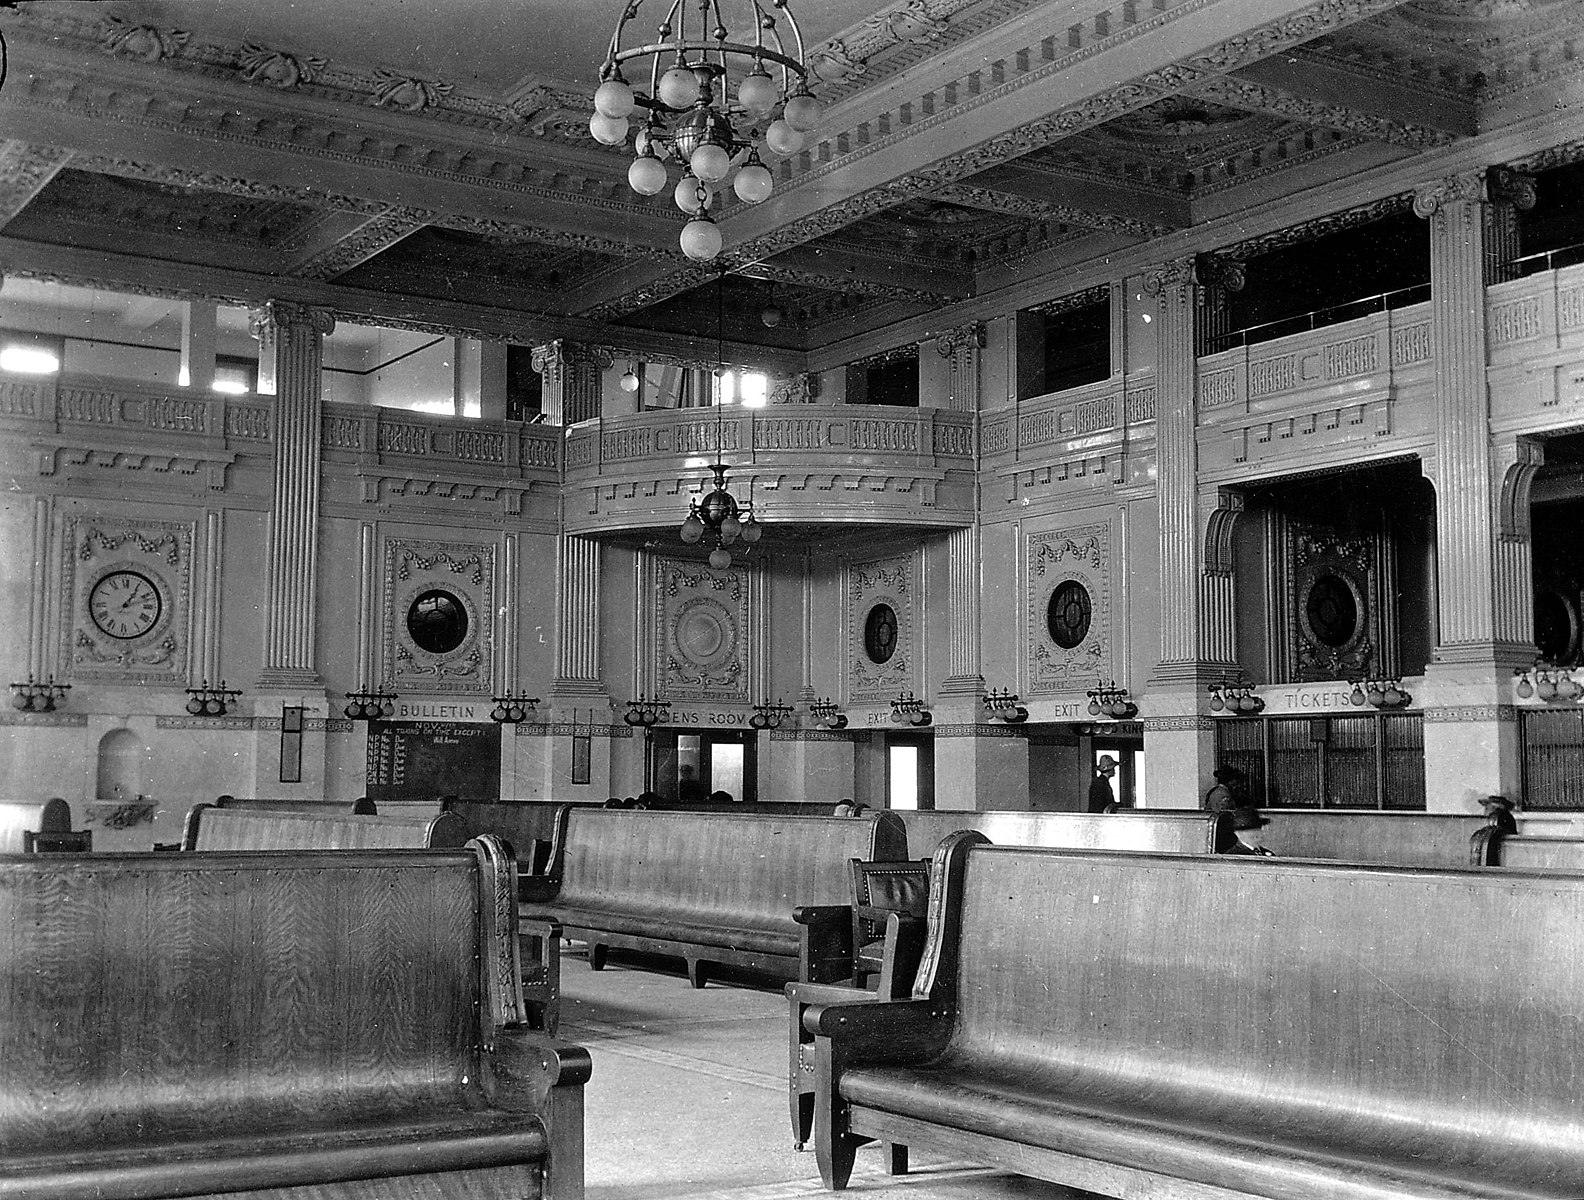 Balcony that looks over the main waiting area at King Street Station, 1907